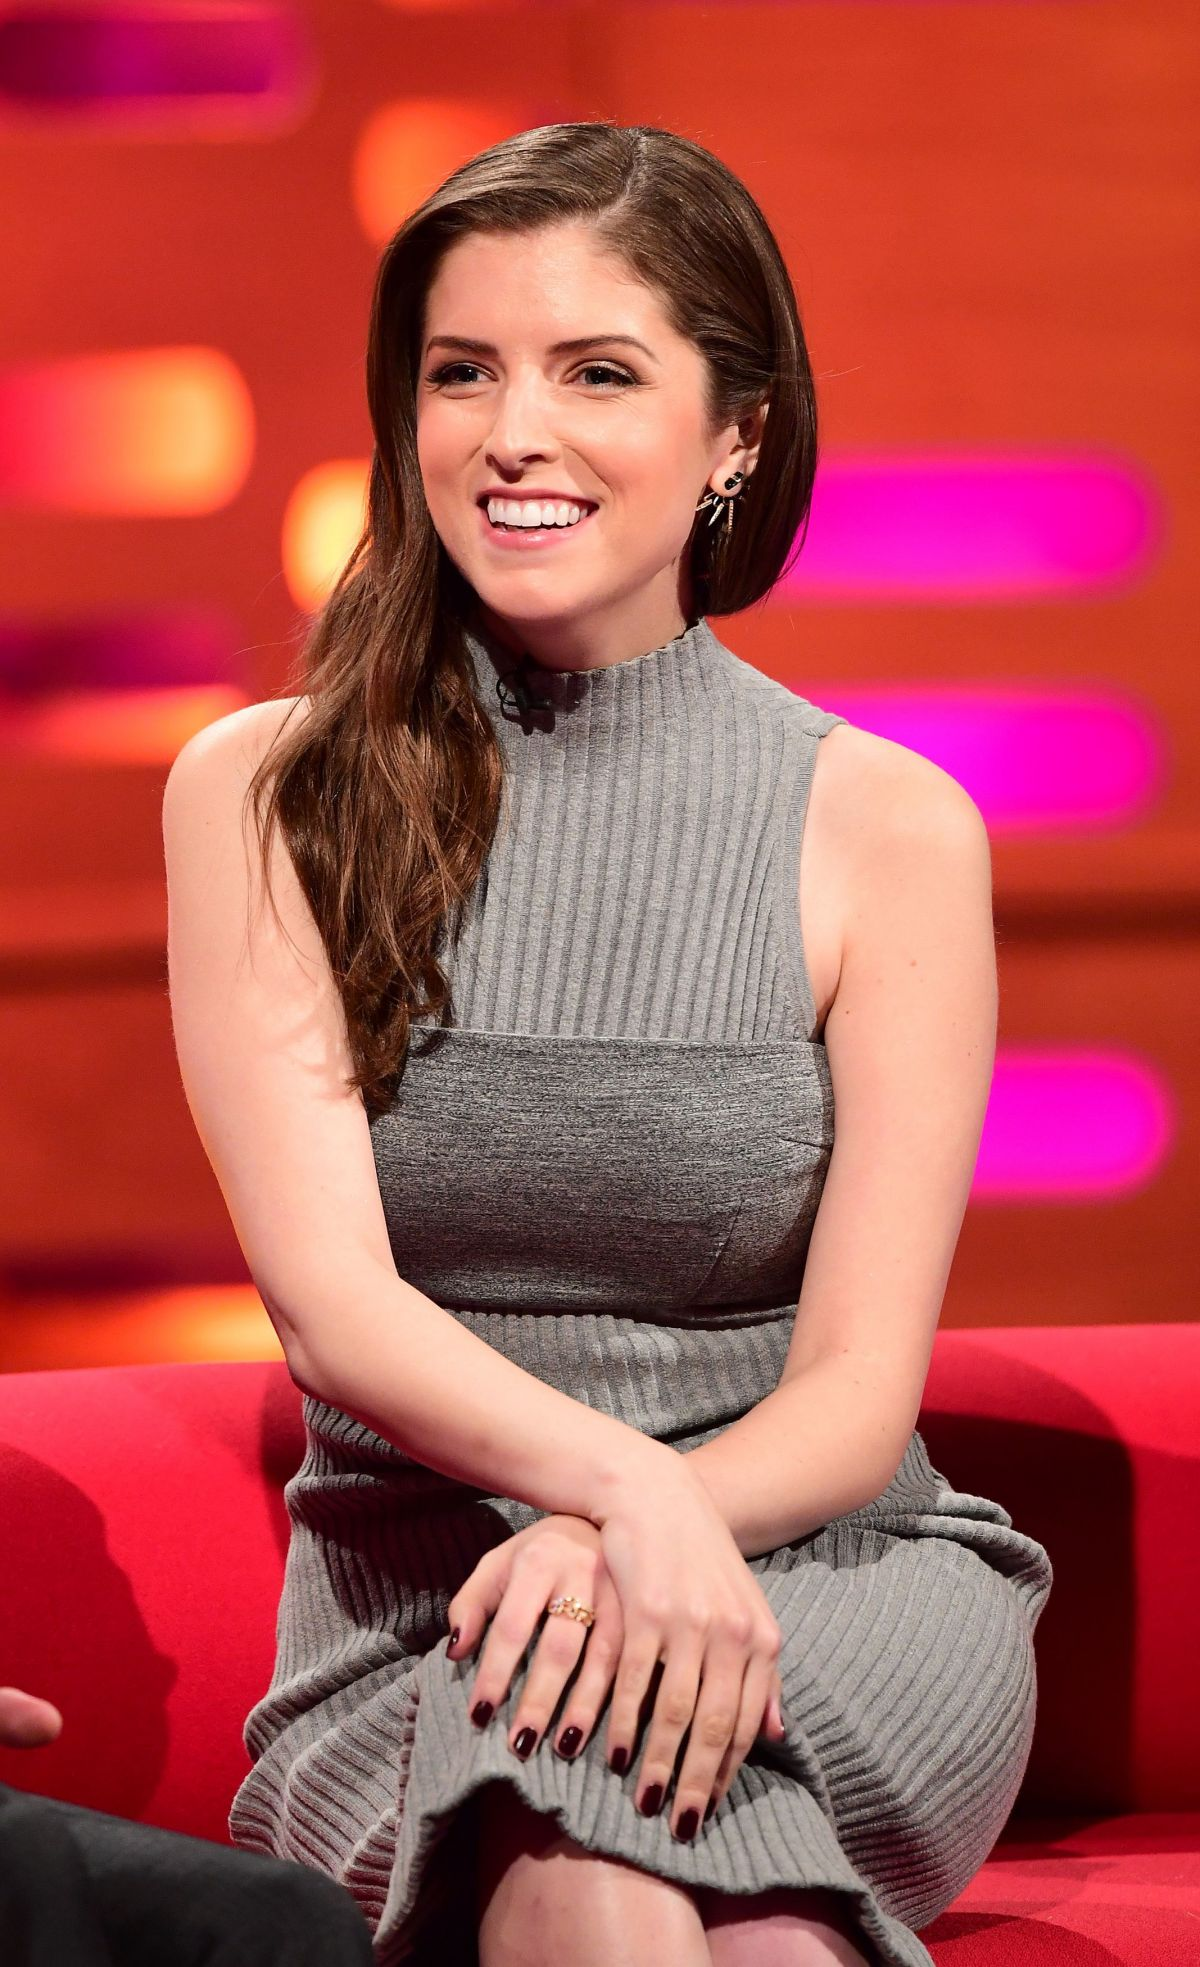 ANNA KENDRICK at The Graham Norton Show in London 09/29/2016